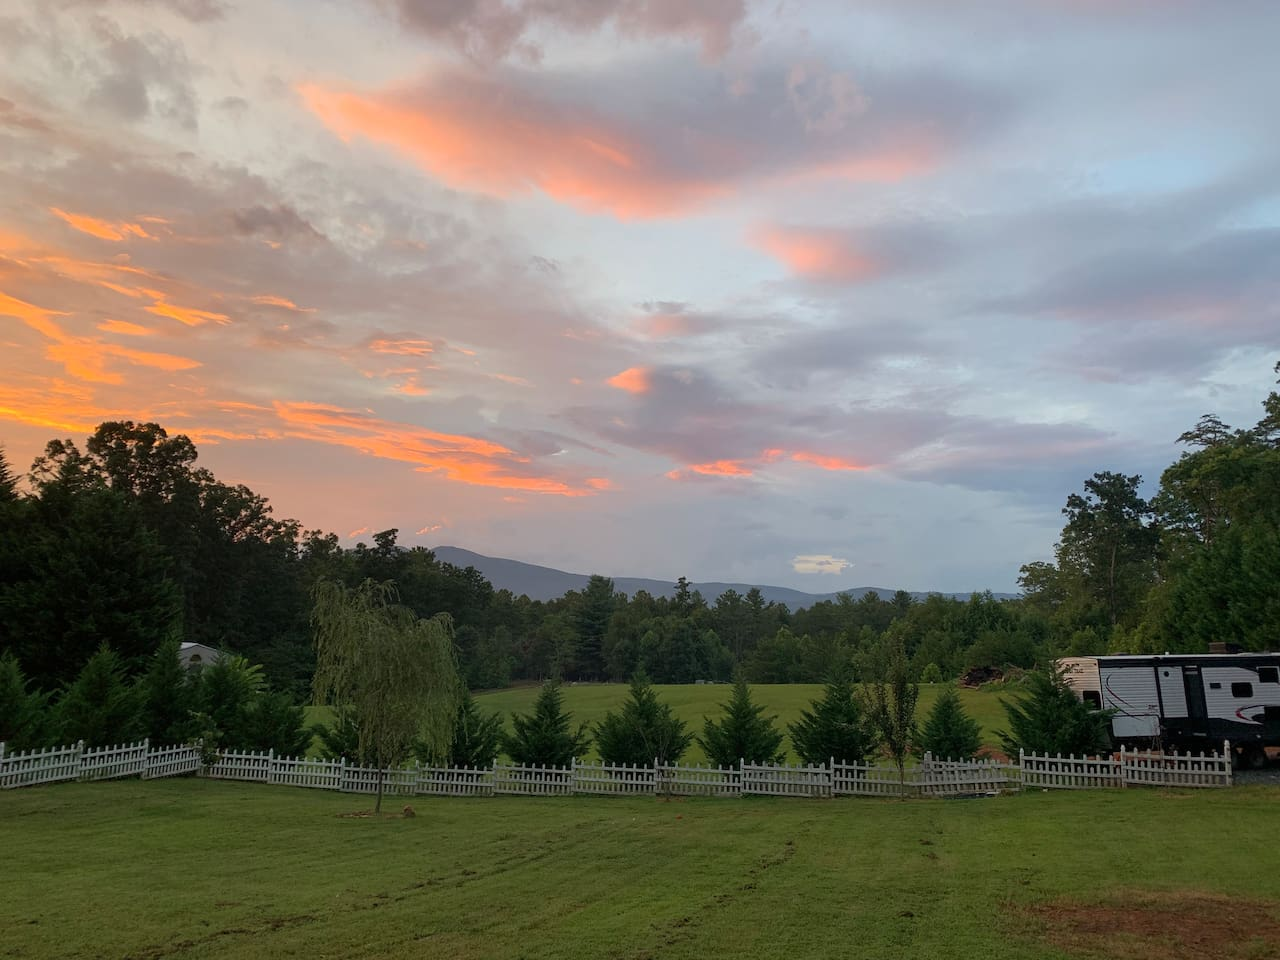 View from back porch of main house. Photo taken 7/18/19